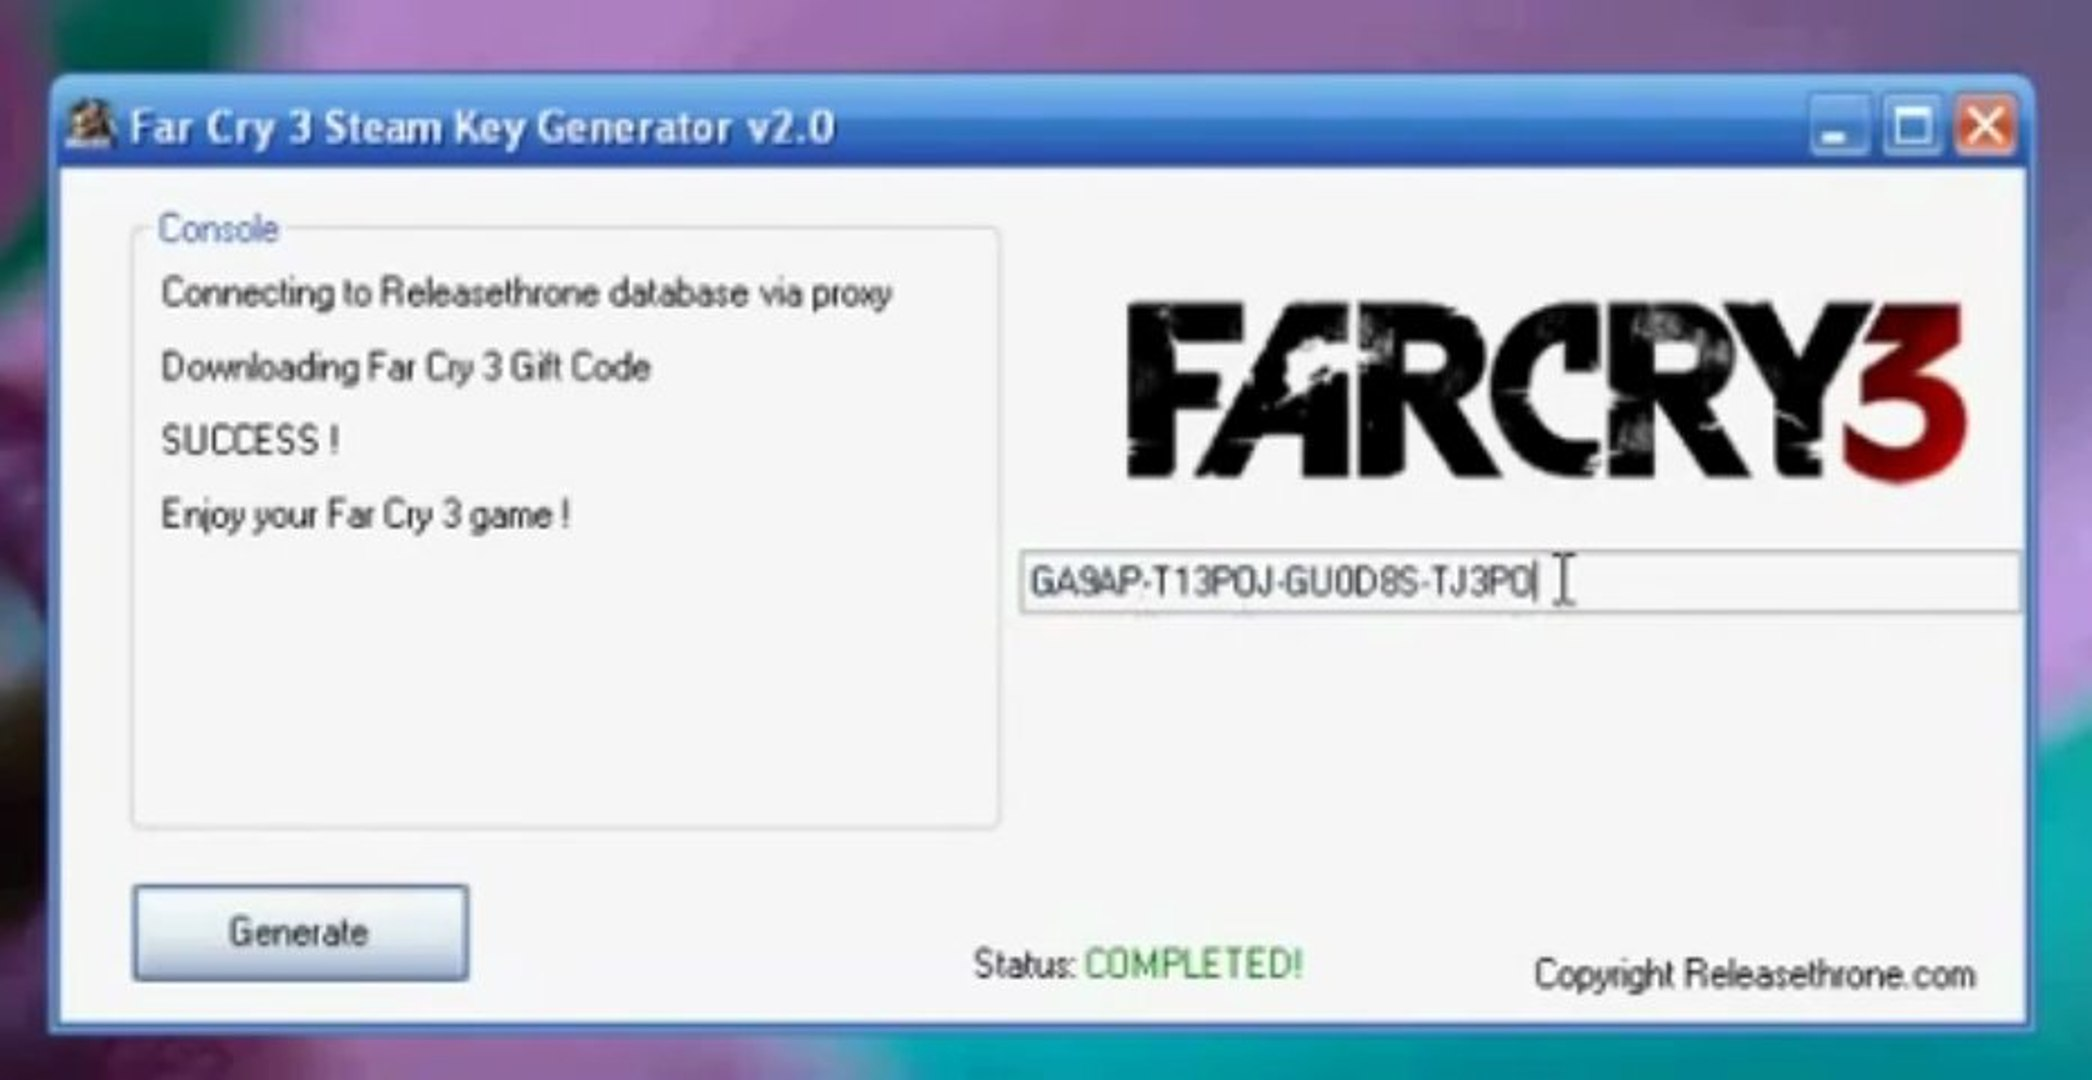 [DOWNLOAD] Far Cry 3 Steam Key Generator